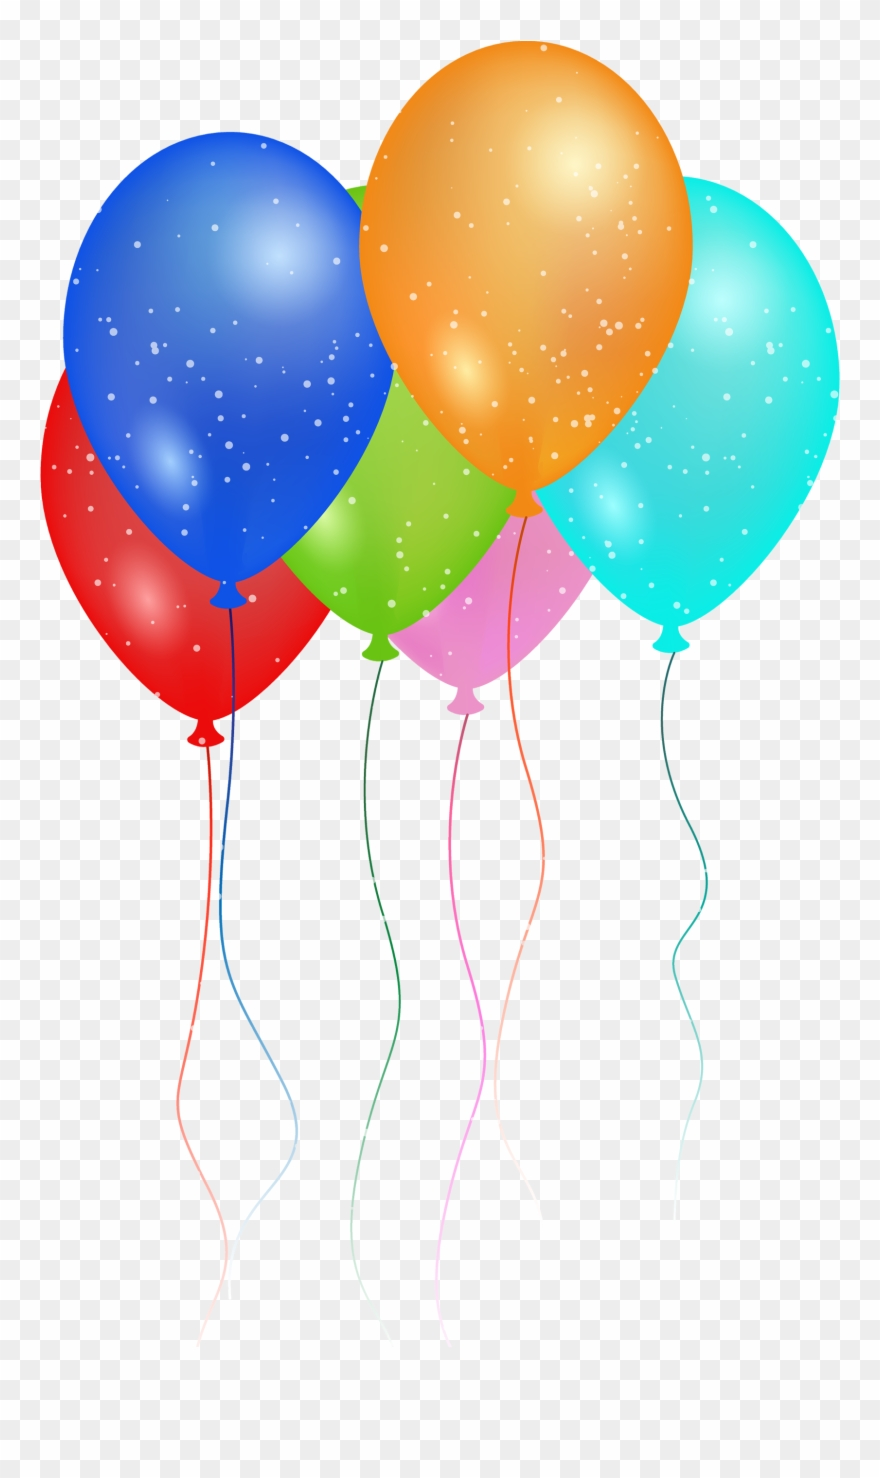 Birthday Balloons Png Www Imgkid Com The Image Kid.